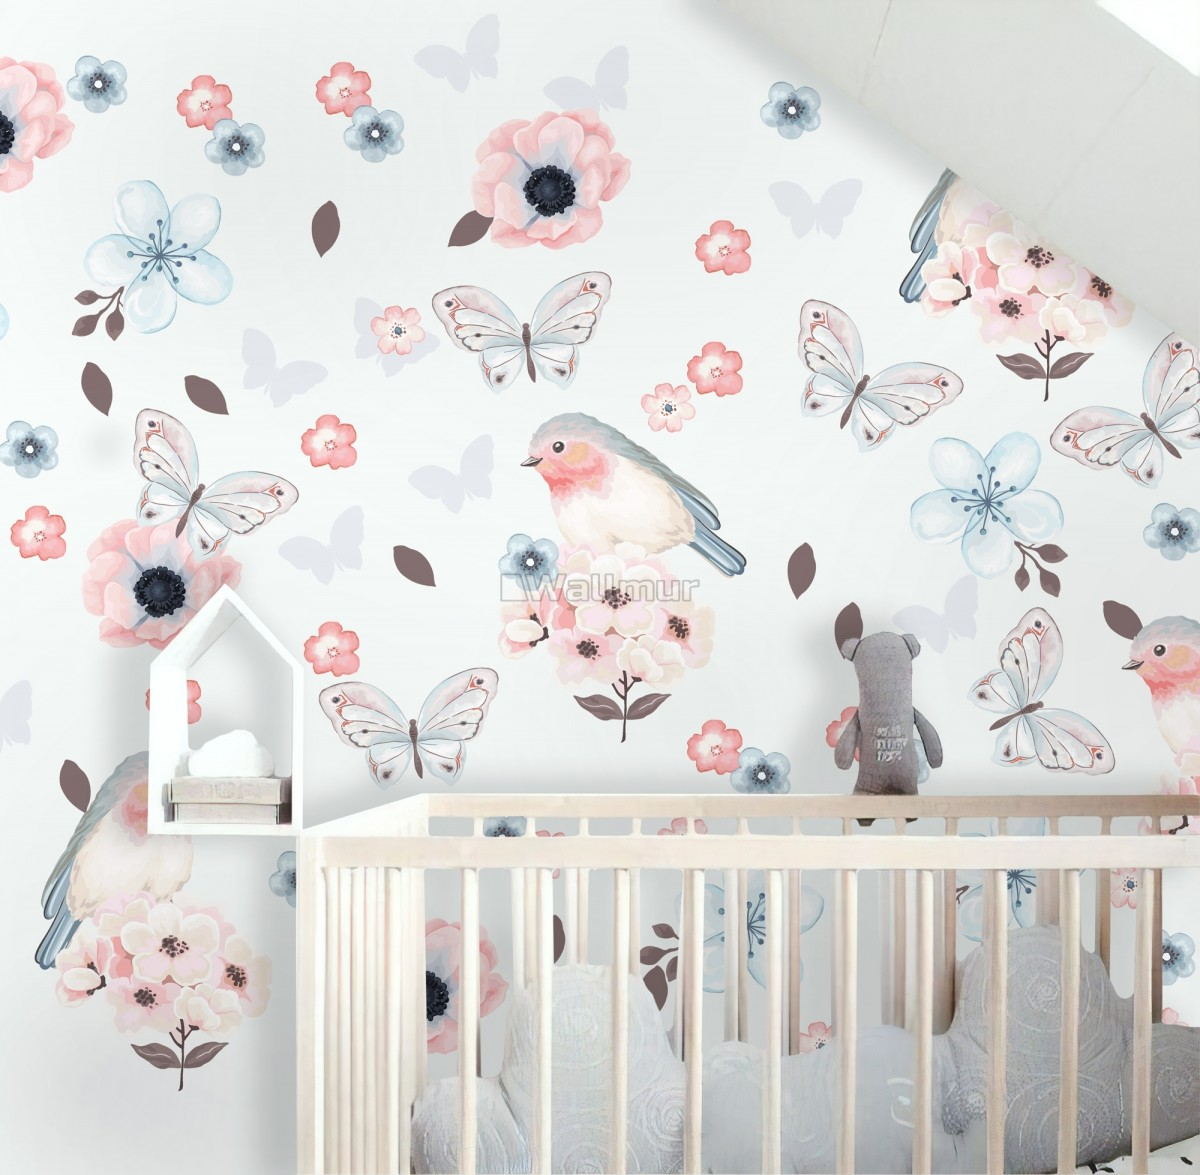 Watercolor Pink Blue Florals with Birds and Butterfly Wall Decal Sticker